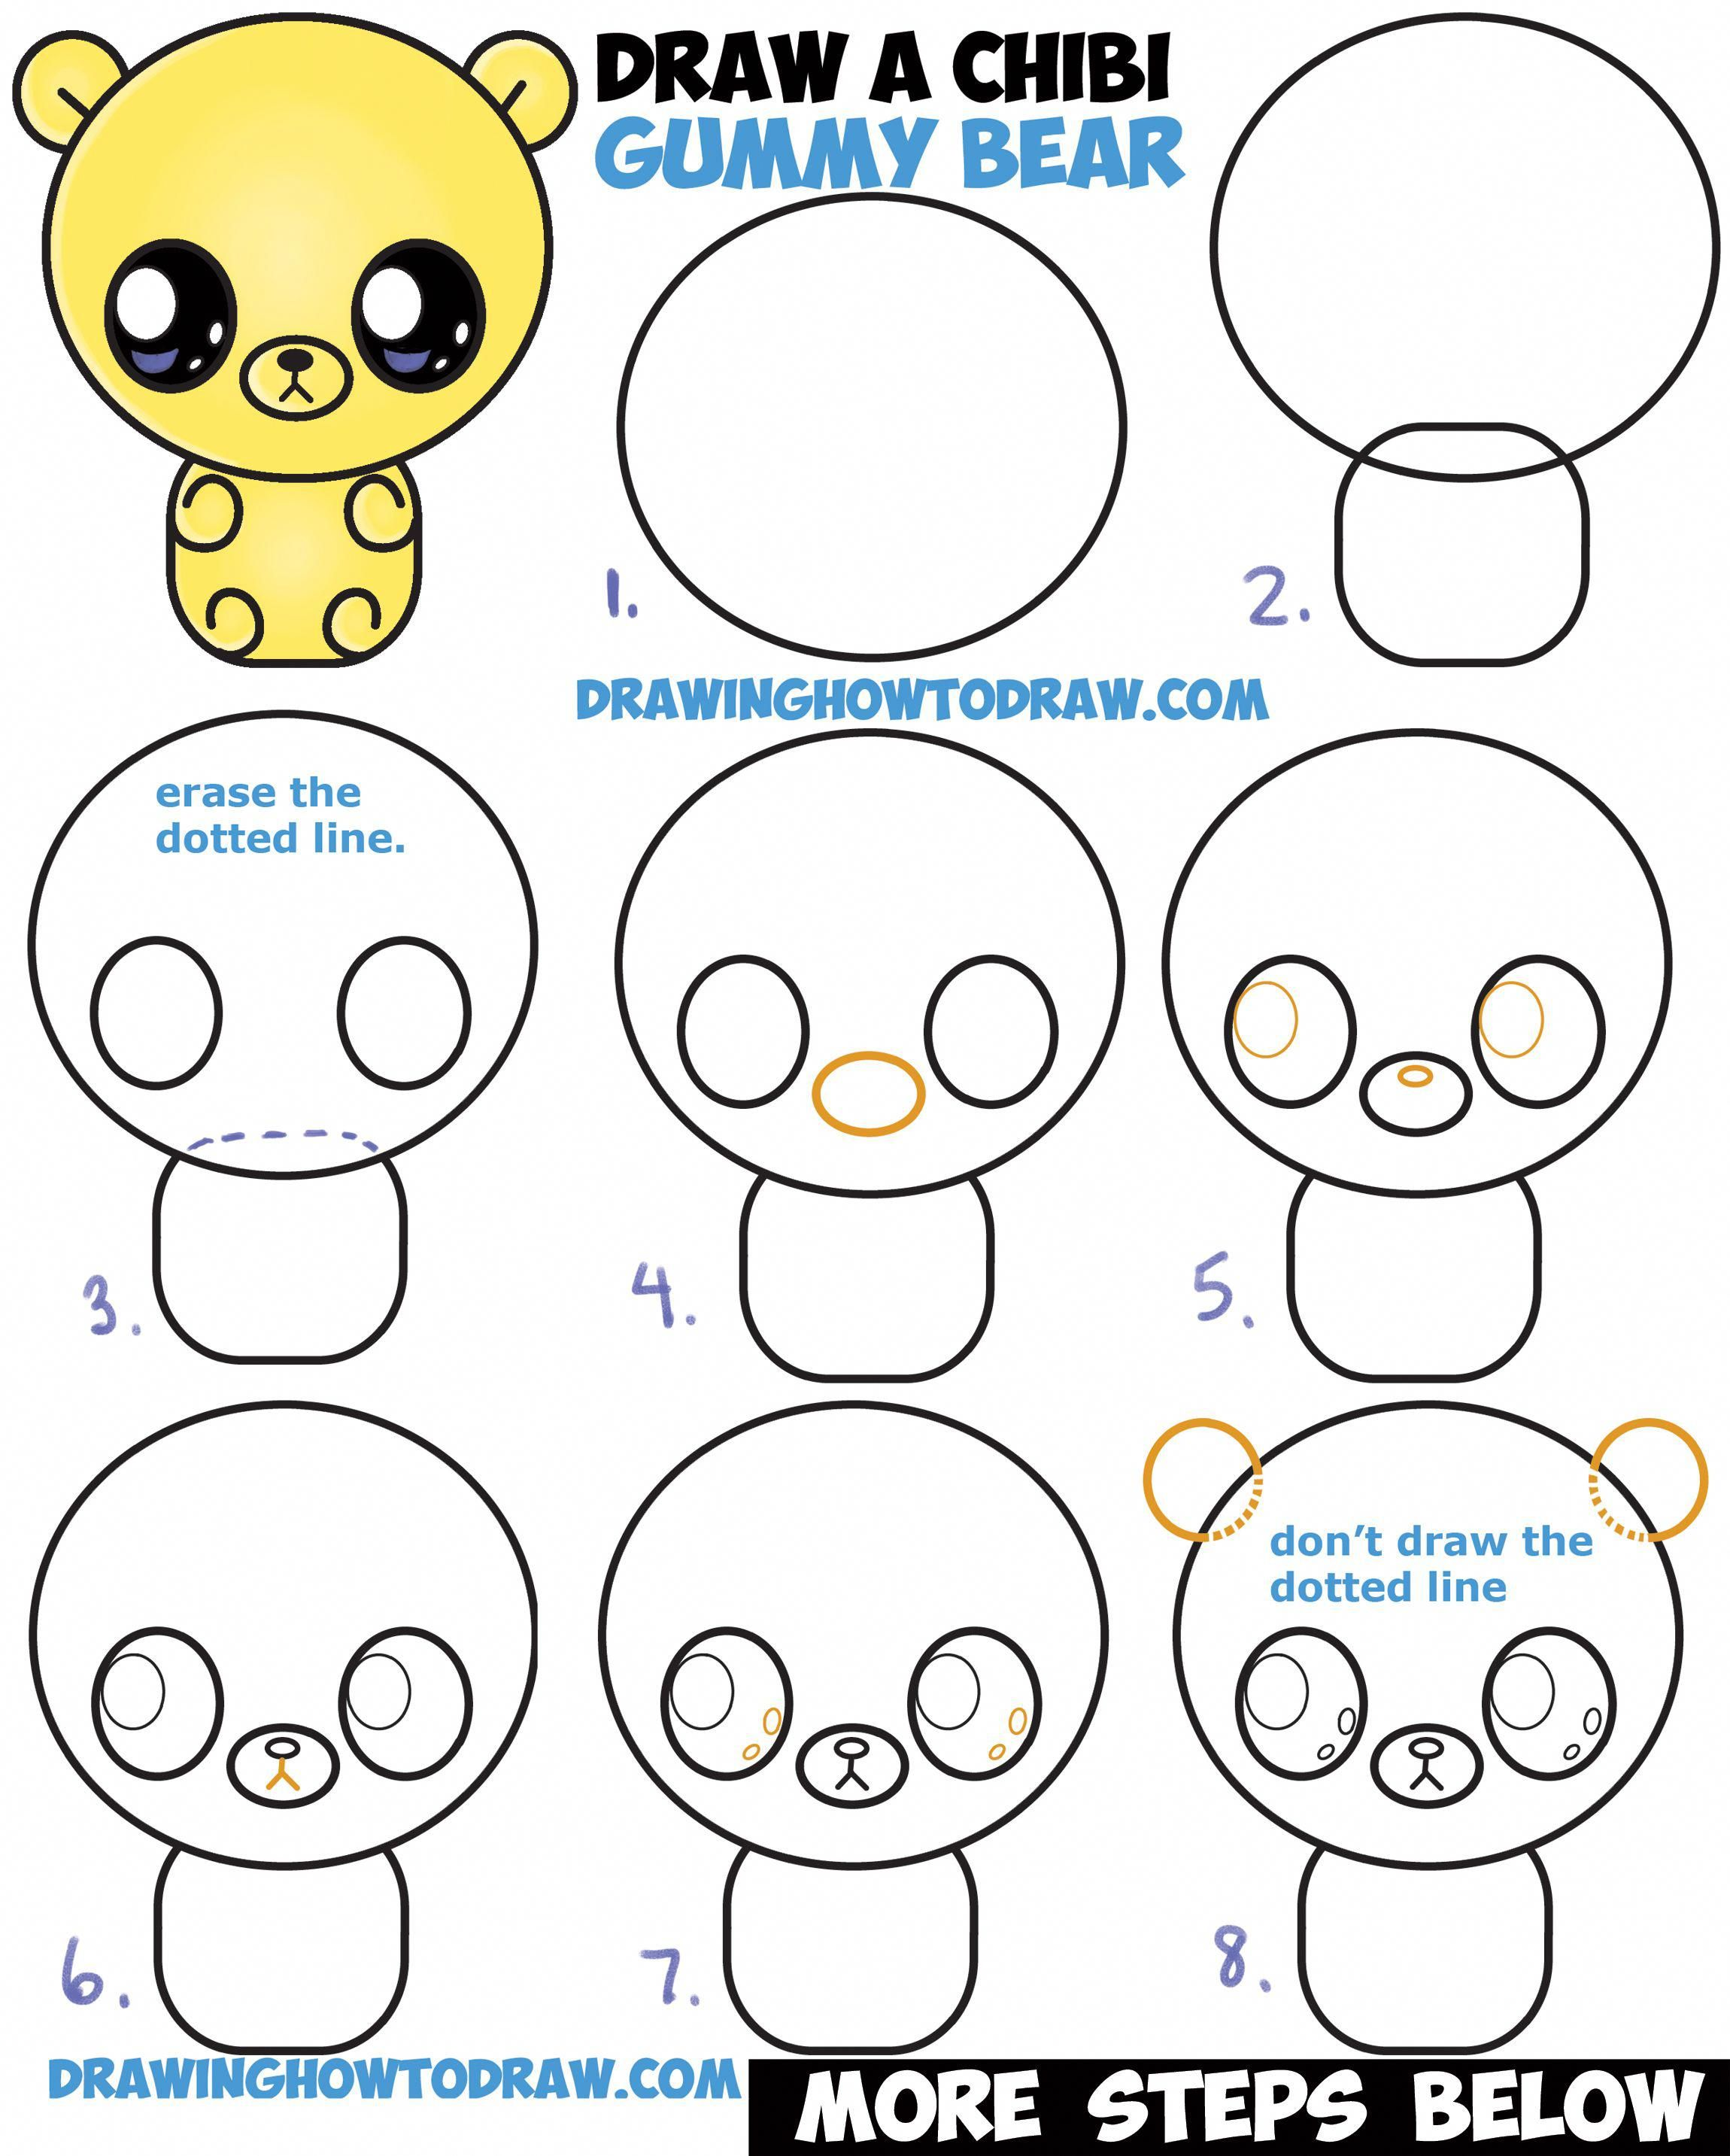 Step By Step Easy And Simple Art Video Lessons For Kids38748323227515 Drawing Tutorial Drawing Tutorials For Kids Easy Drawings